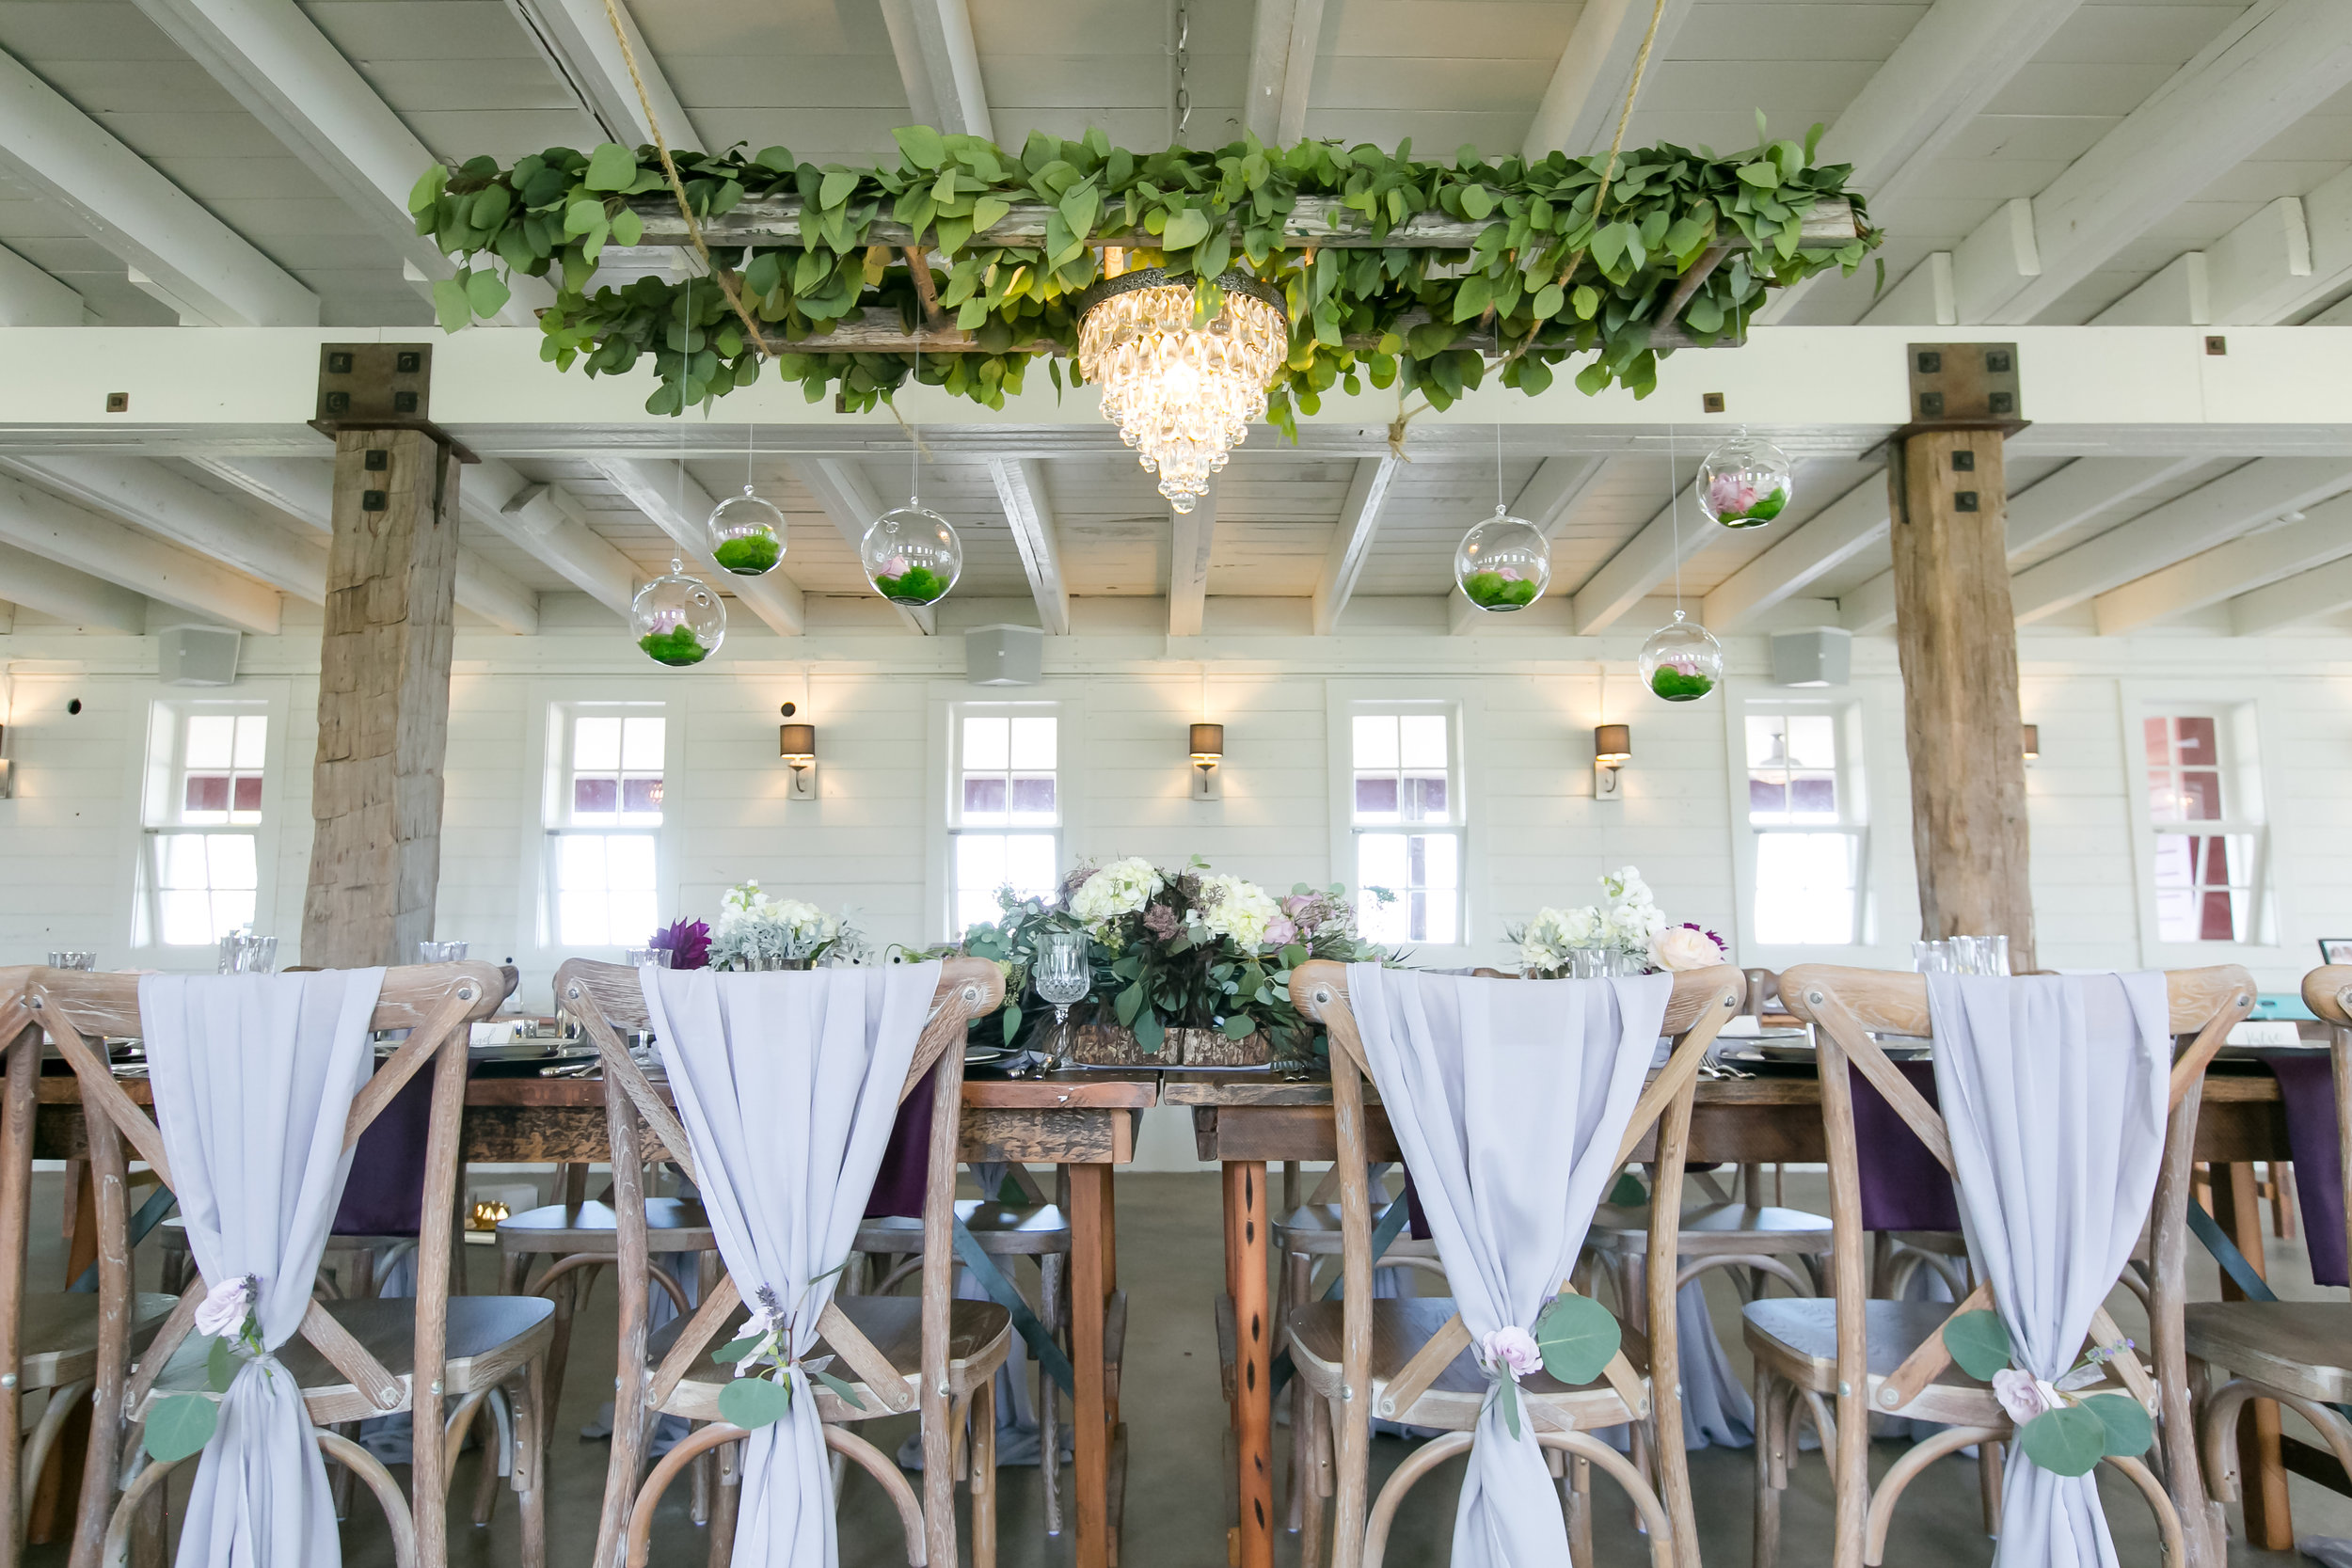 Farm styled shoot for wedding decor and head table inspiration / chair wraps